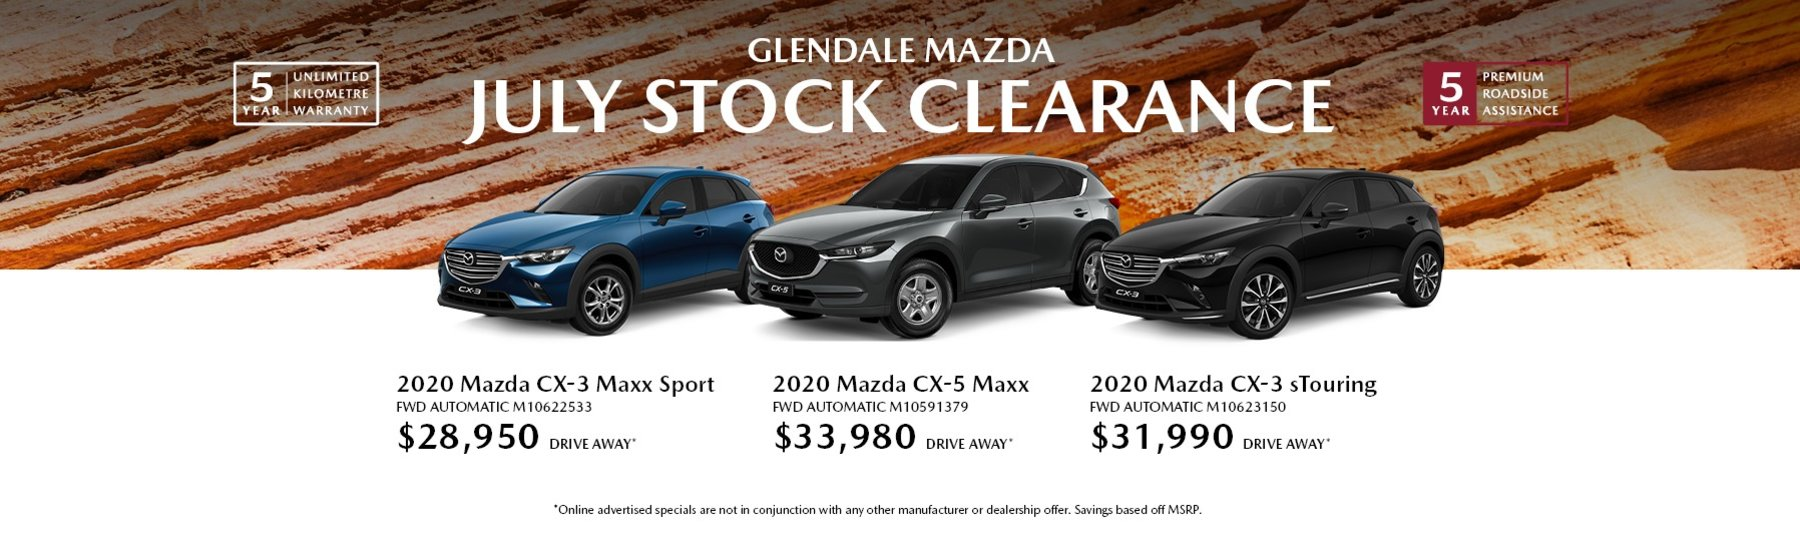 July Stock Clearance